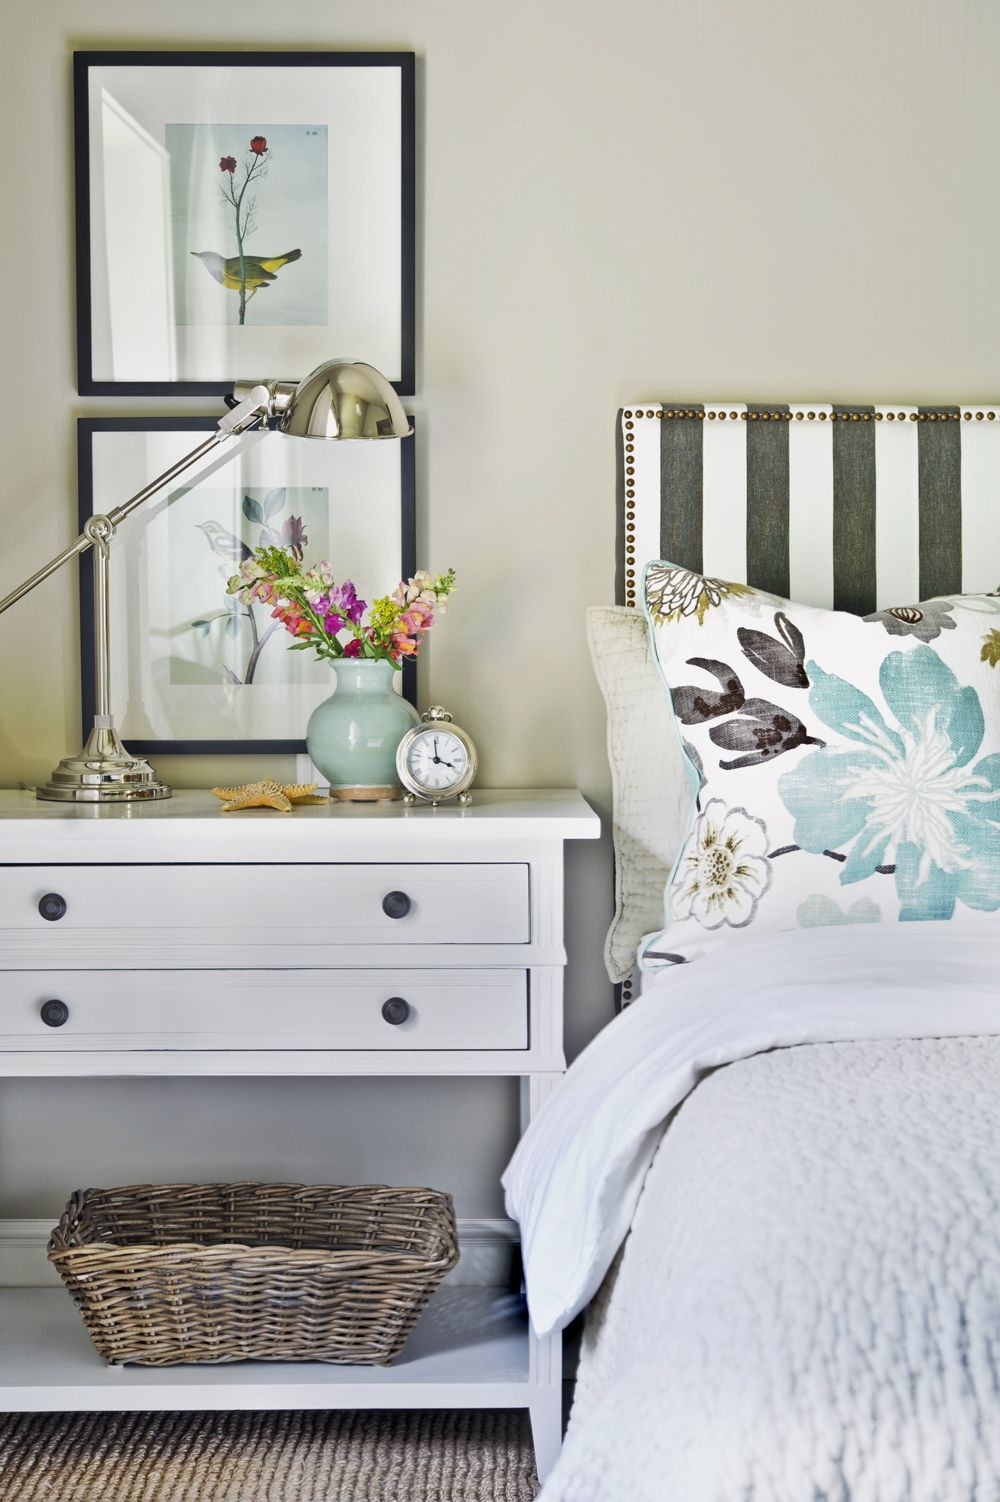 Master bedroom headboard design ideas  Master Bedroom Tracey Ayton Photography  Thereus no place like Home